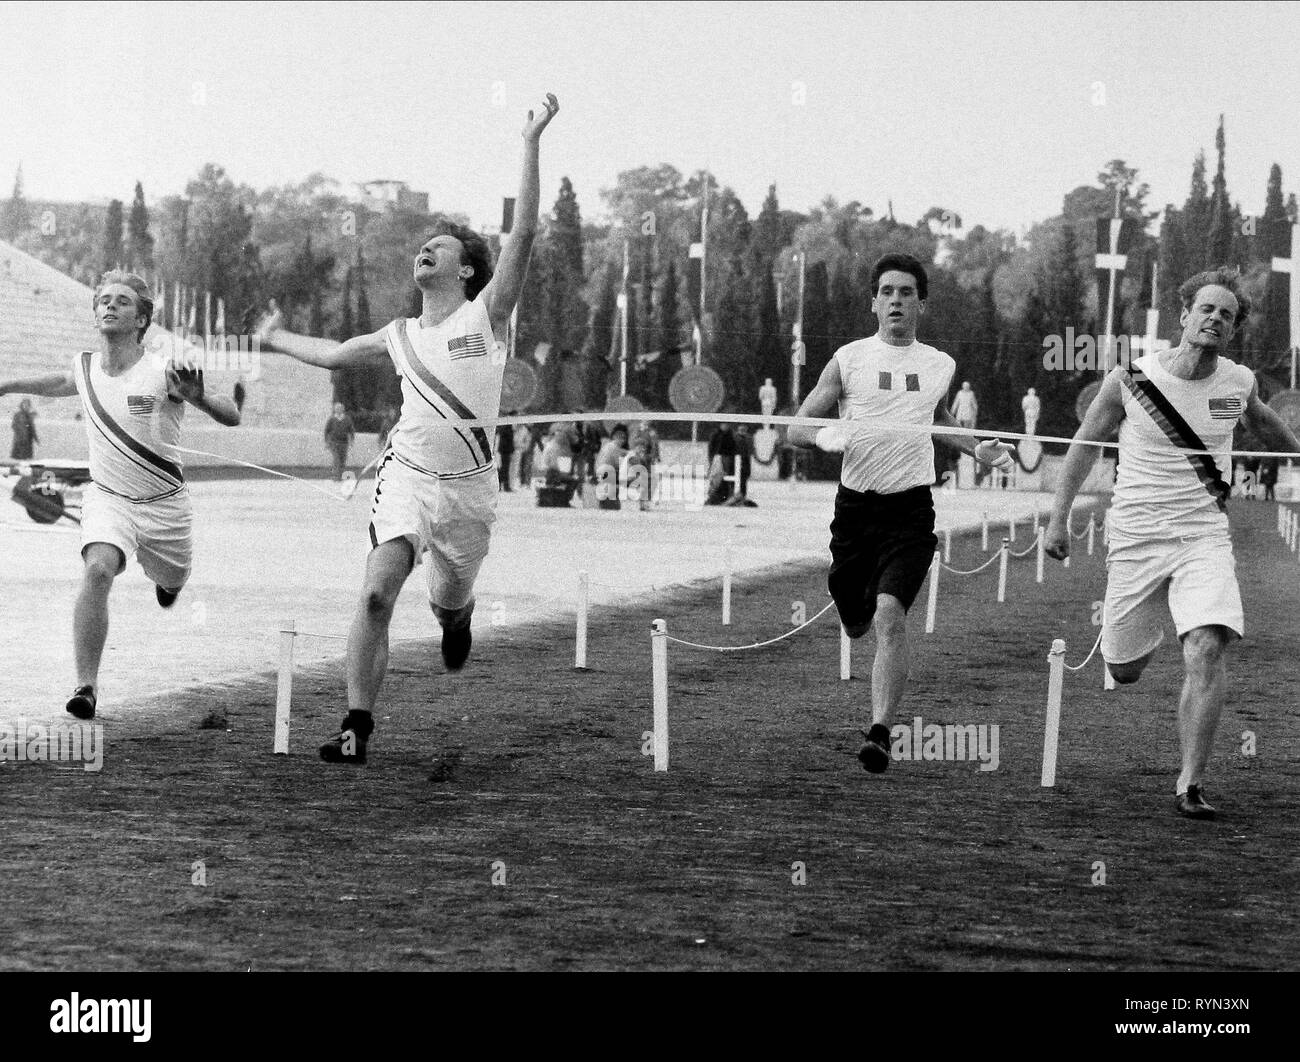 CONNERY,COBB,FREWER, THE FIRST OLYMPICS: ATHENS 1896, 1984 Stock Photo